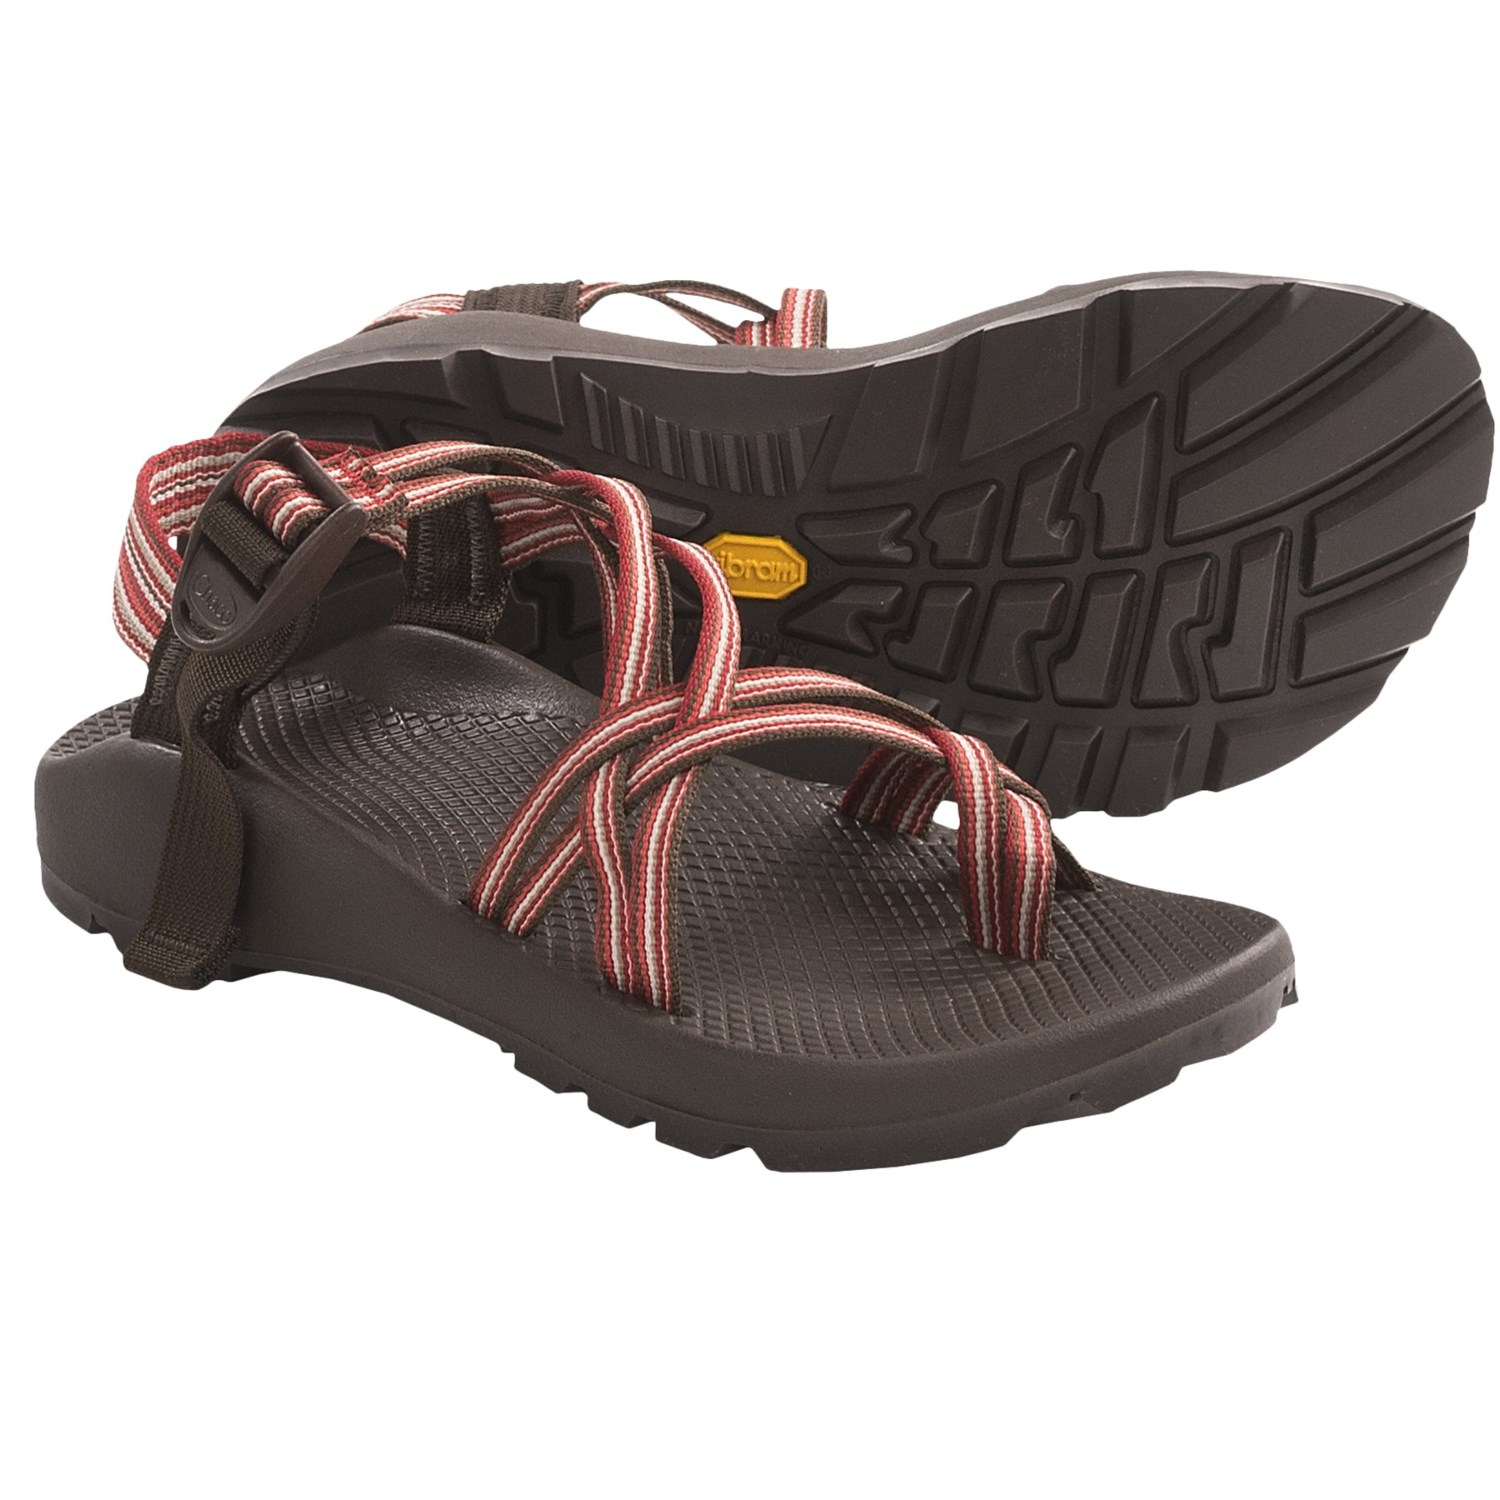 Excellent Colors Include A Variety Of Neutrals, As Well As Brighter Colors Such As Tiedye Purple And Checkered Red For A Sturdy And Durable Sandal That Will Go With Whatever Is In Your Closet, Opt For The Chaco Dorra Sandal The Sandal Is Made With